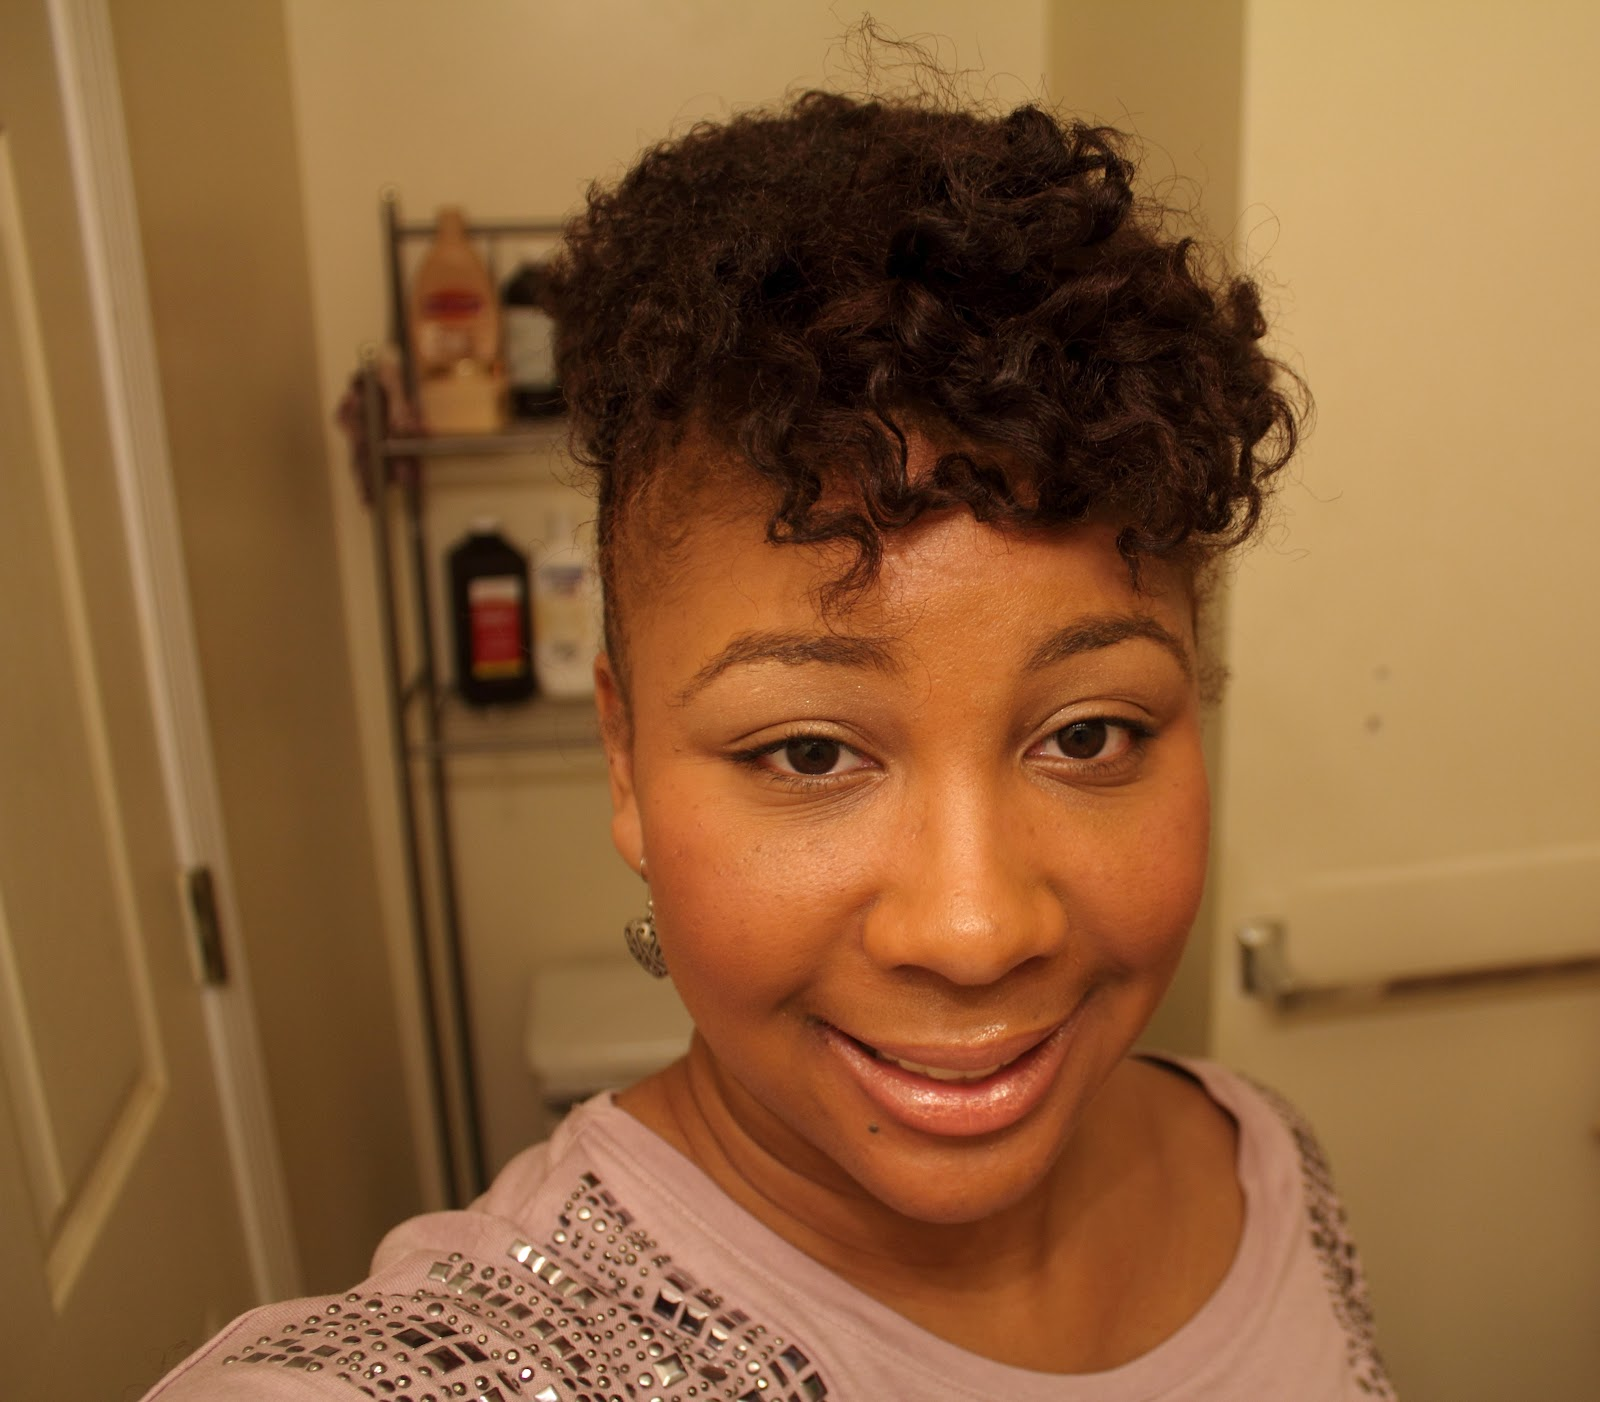 curly updo natural hair style.JPG